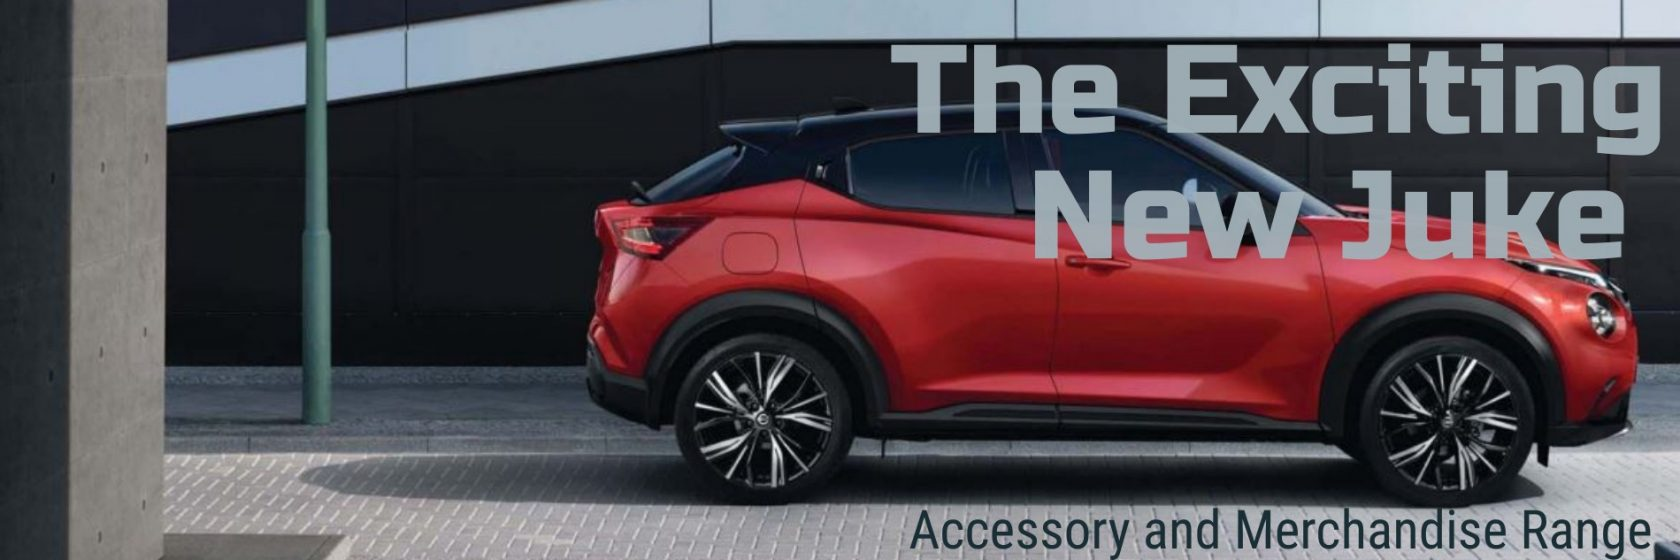 New Juke 2020 Parts Accessories Merchandise